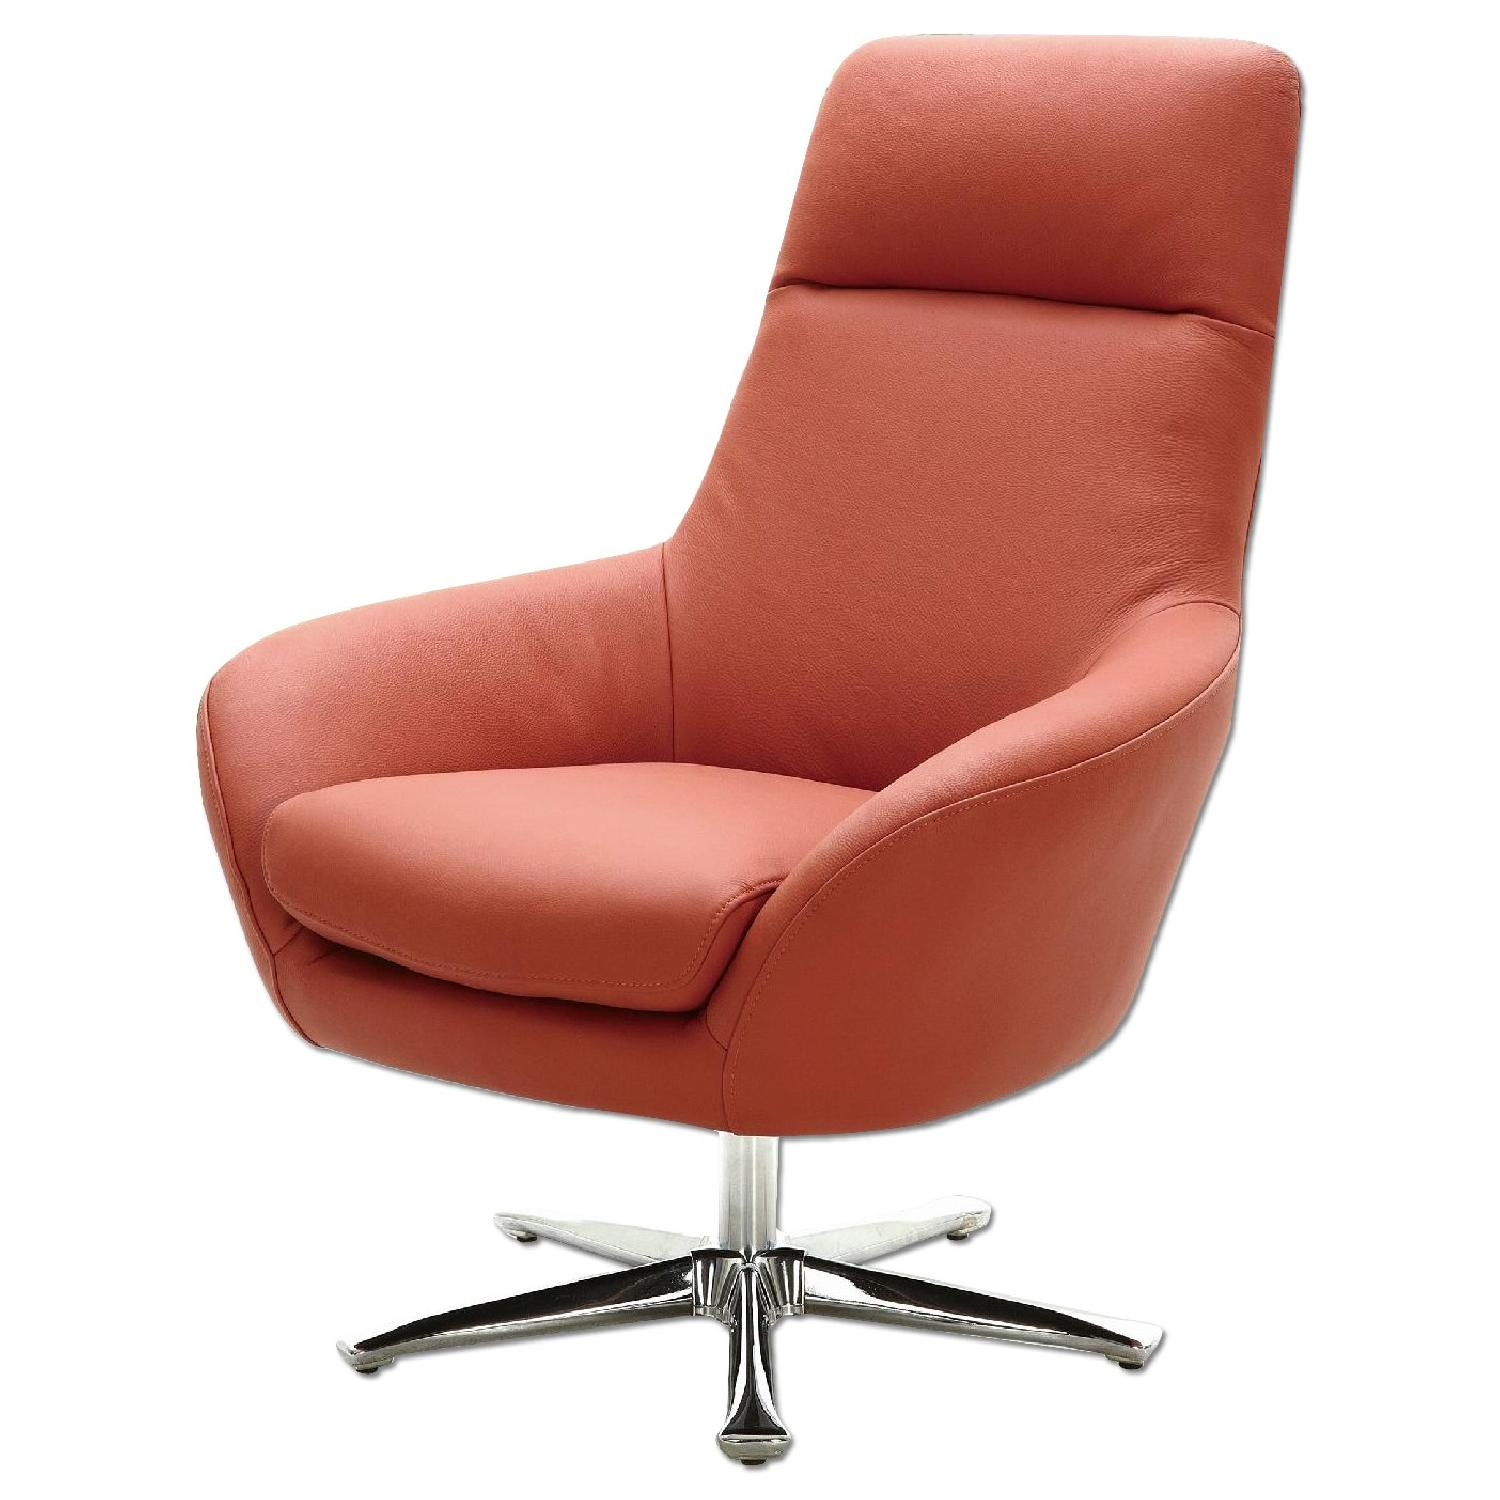 Orange Leather Chair Modern Style Swivel Accent Chair In Orange Premium Full